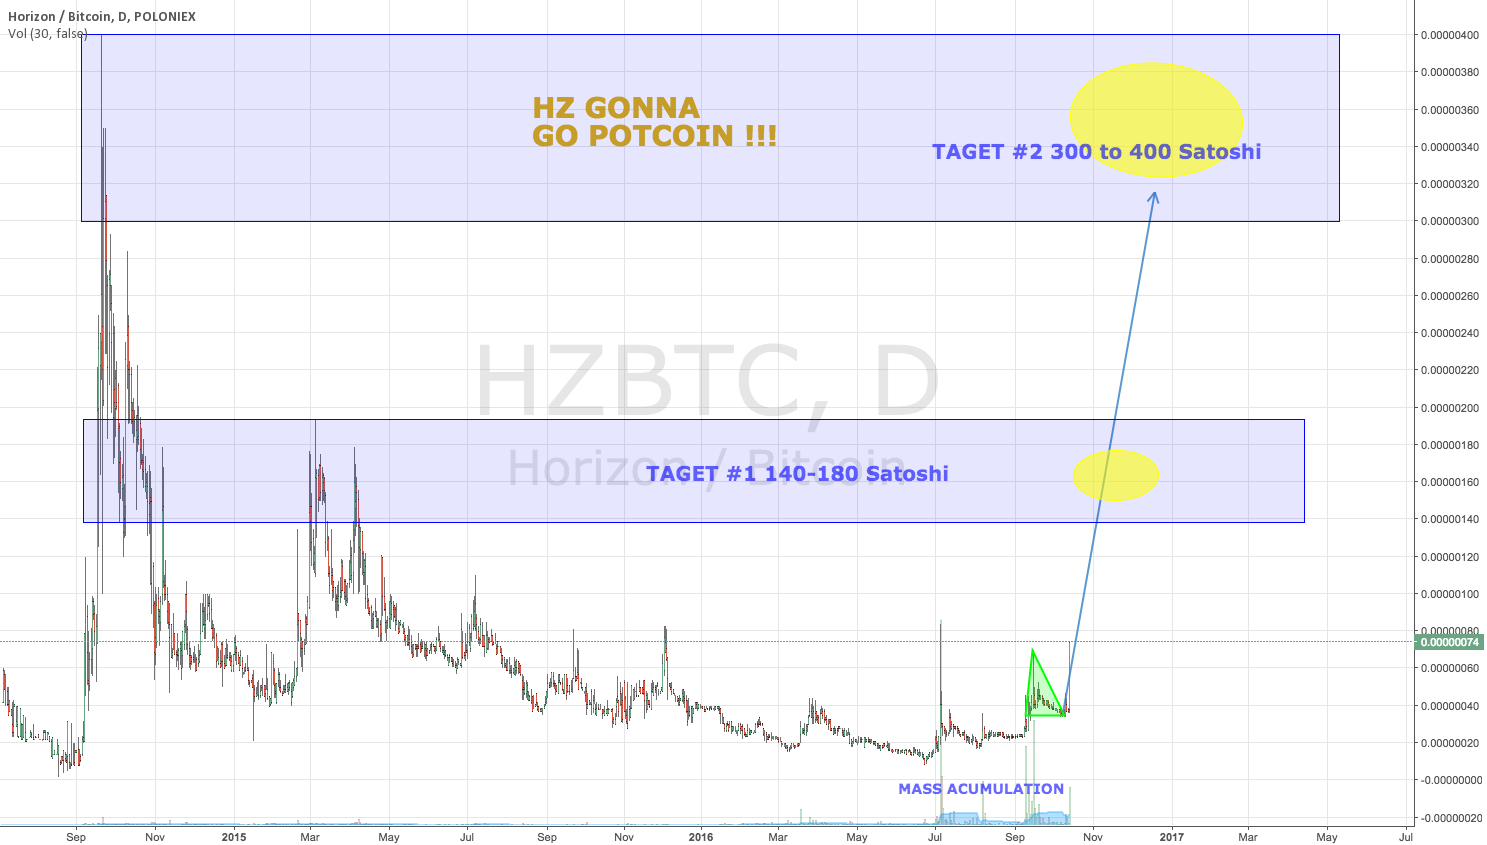 HZ gonna go POTCOIN !!!!  DOUBLE YOUR MONEY on HZ !!! HERE WE GO